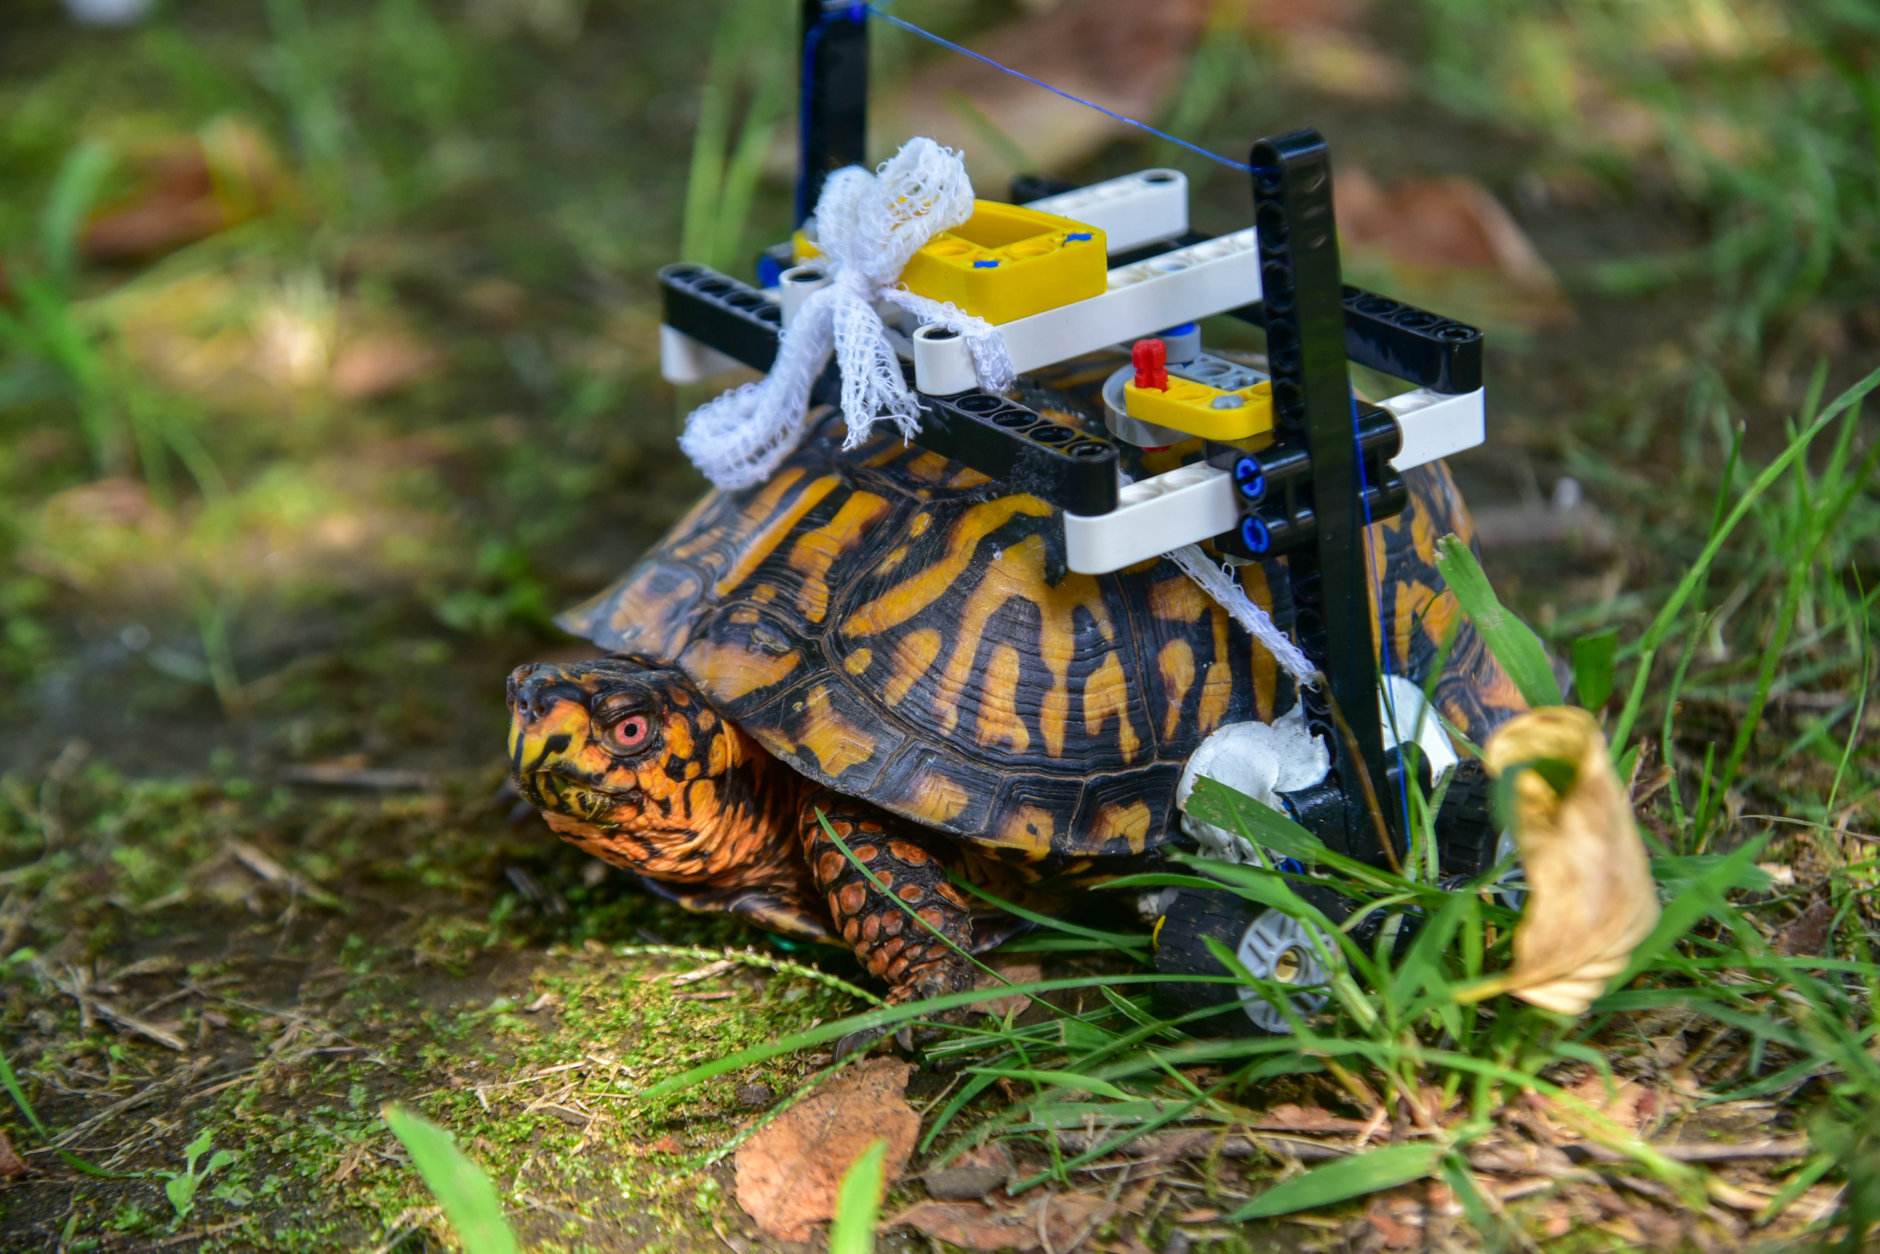 The LEGO wheelchair lets an injured box turtle move around. (Courtesy Maryland Zoo/Sinclair Miller)